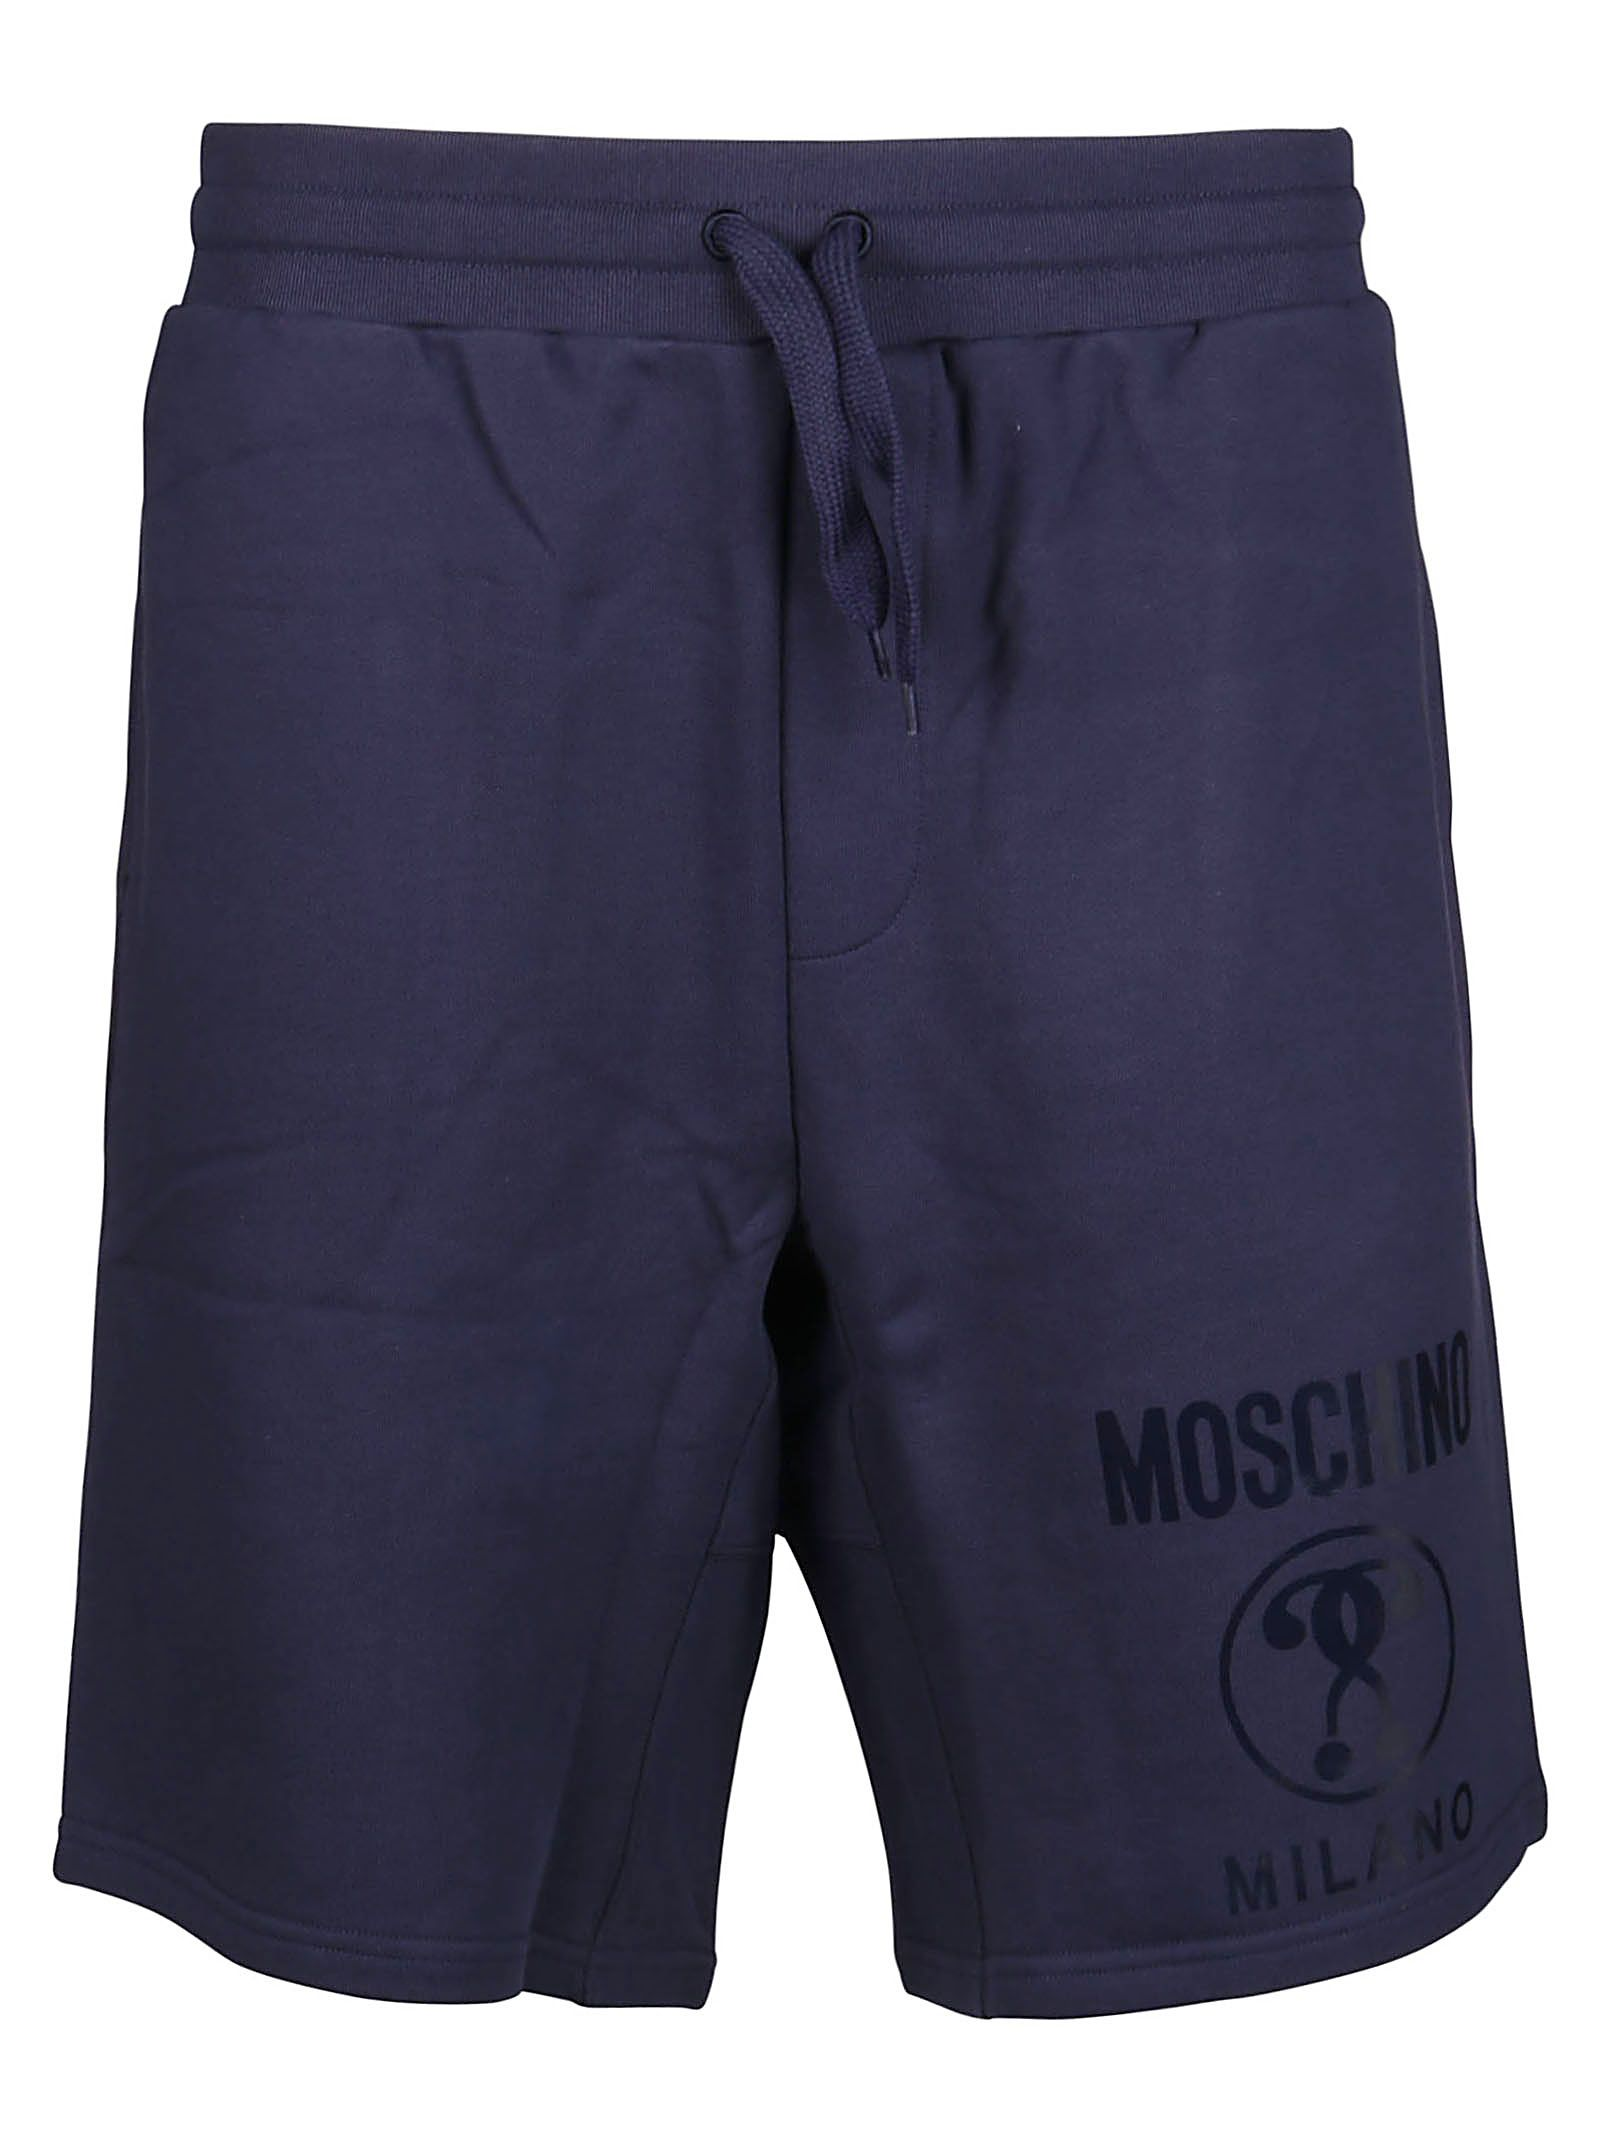 Moschino MOSCHINO MEN'S BLUE COTTON SHORTS